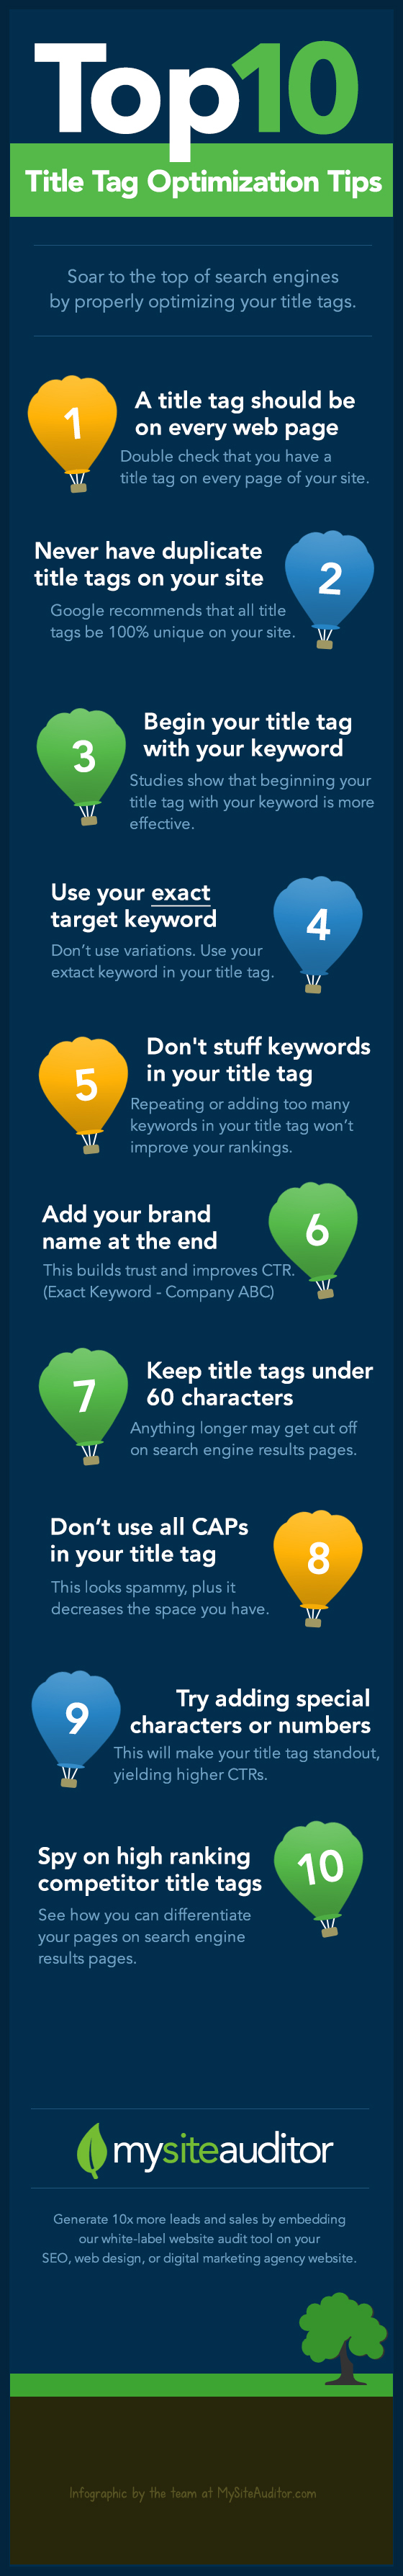 SEO for Beginners 10 Title Tag Optimisation Tips for Better Rankings